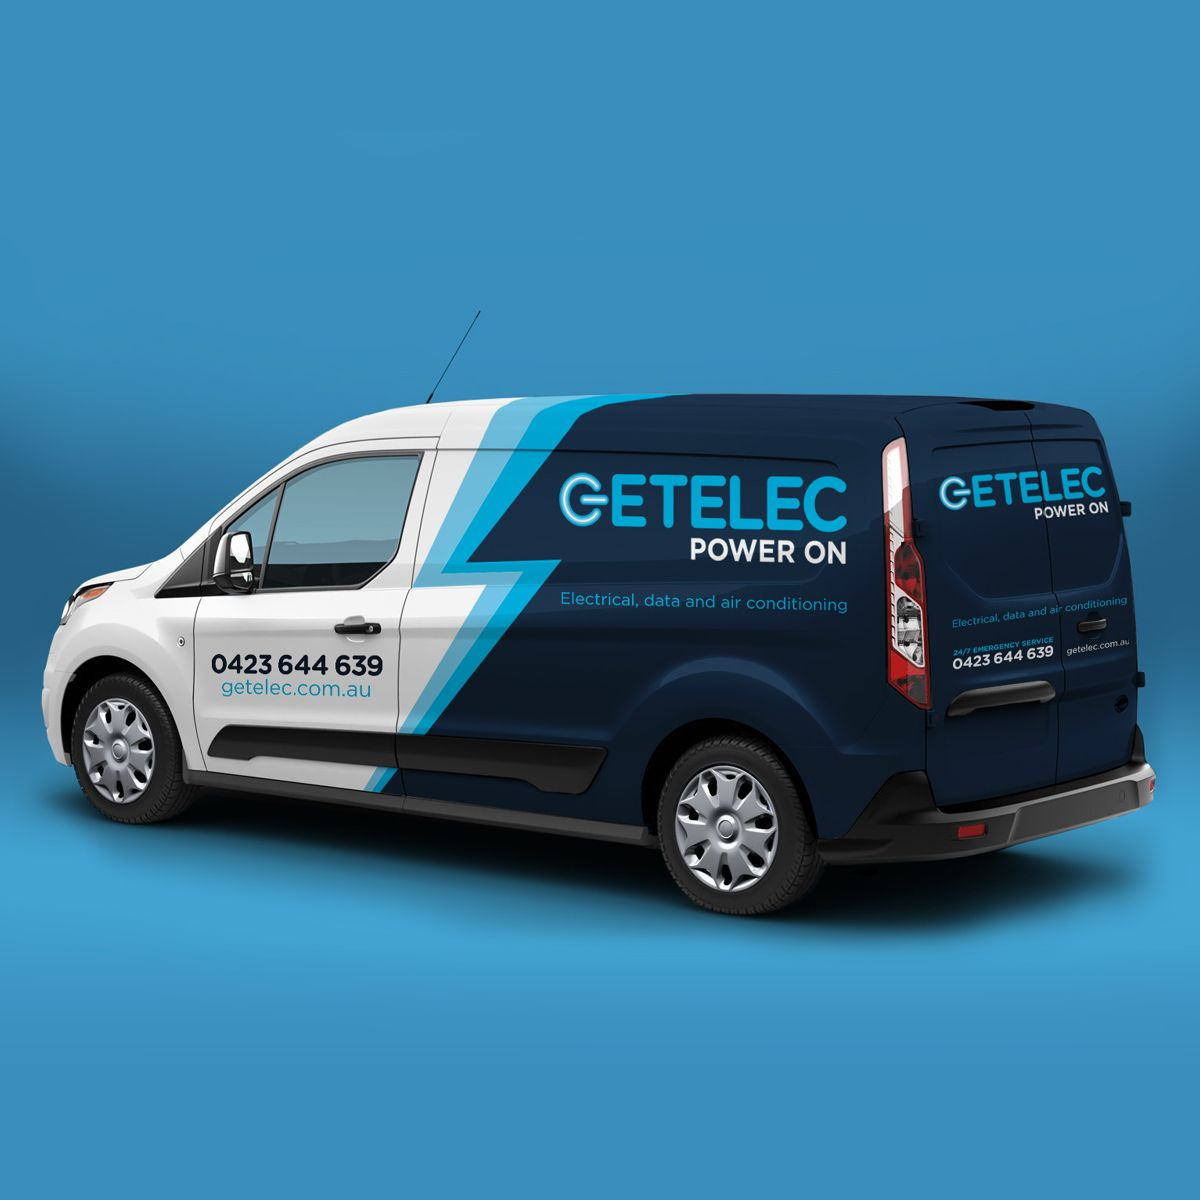 Getelec vehicle decal is another example of logo, graphic and website design for electricians plumbers and all trades